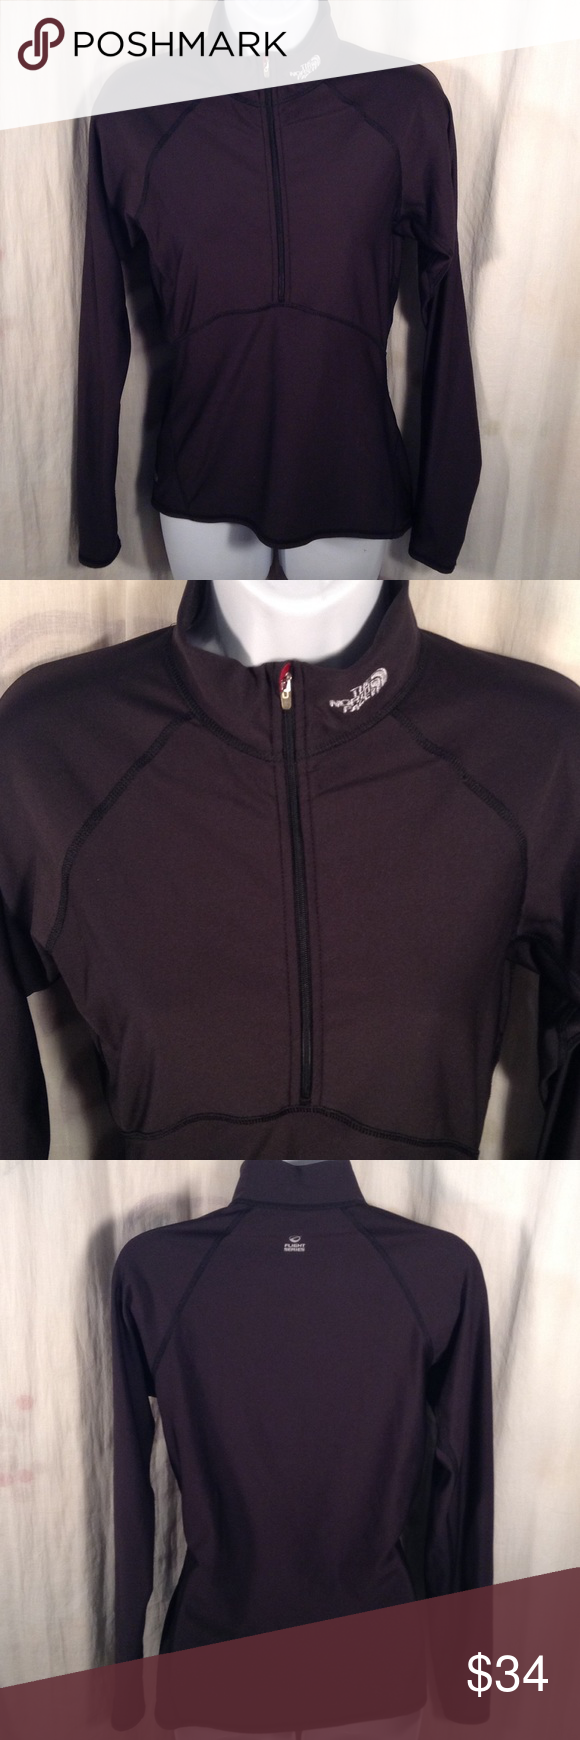 The North Face - Flight Series Black Tight Sweater EXCELLENT CONDITION. No issues. The North Face. Item is a turtleneck front zipper sweater. Polyester and elastane. Vapor Wick. Size M The North Face Sweaters Cowl & Turtlenecks